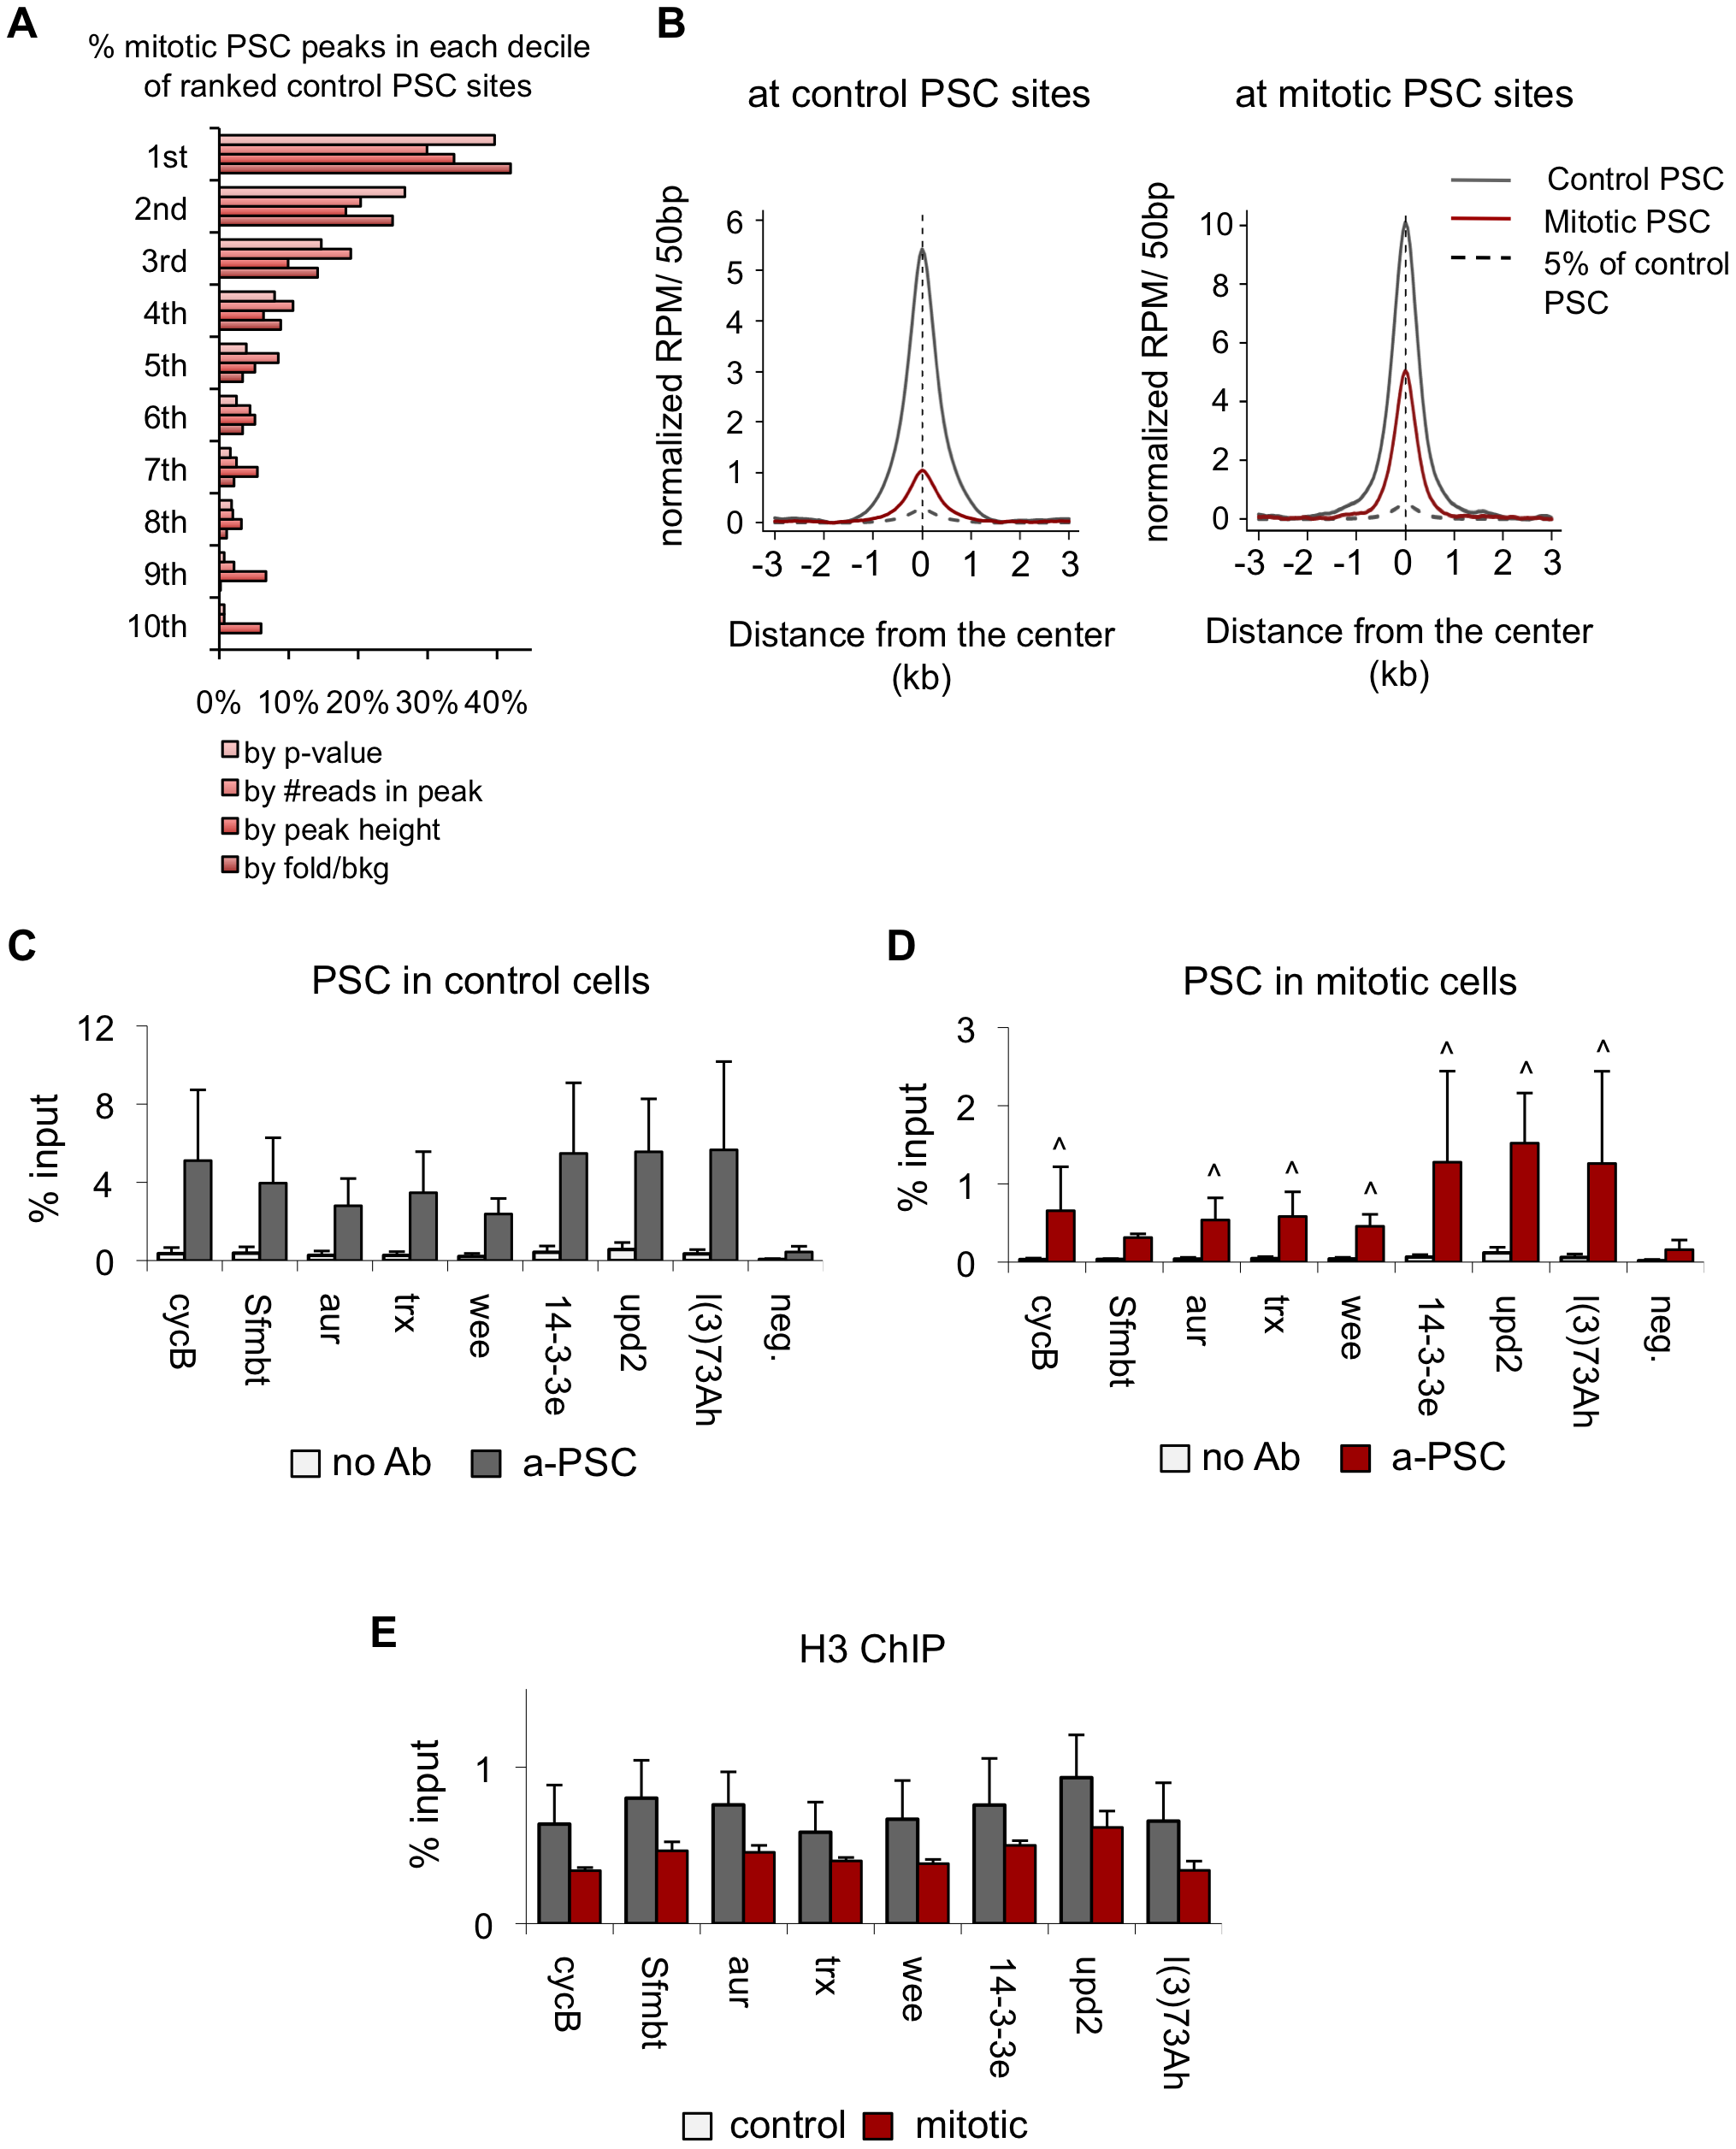 Validation of PSC peaks in control and mitotic cells.